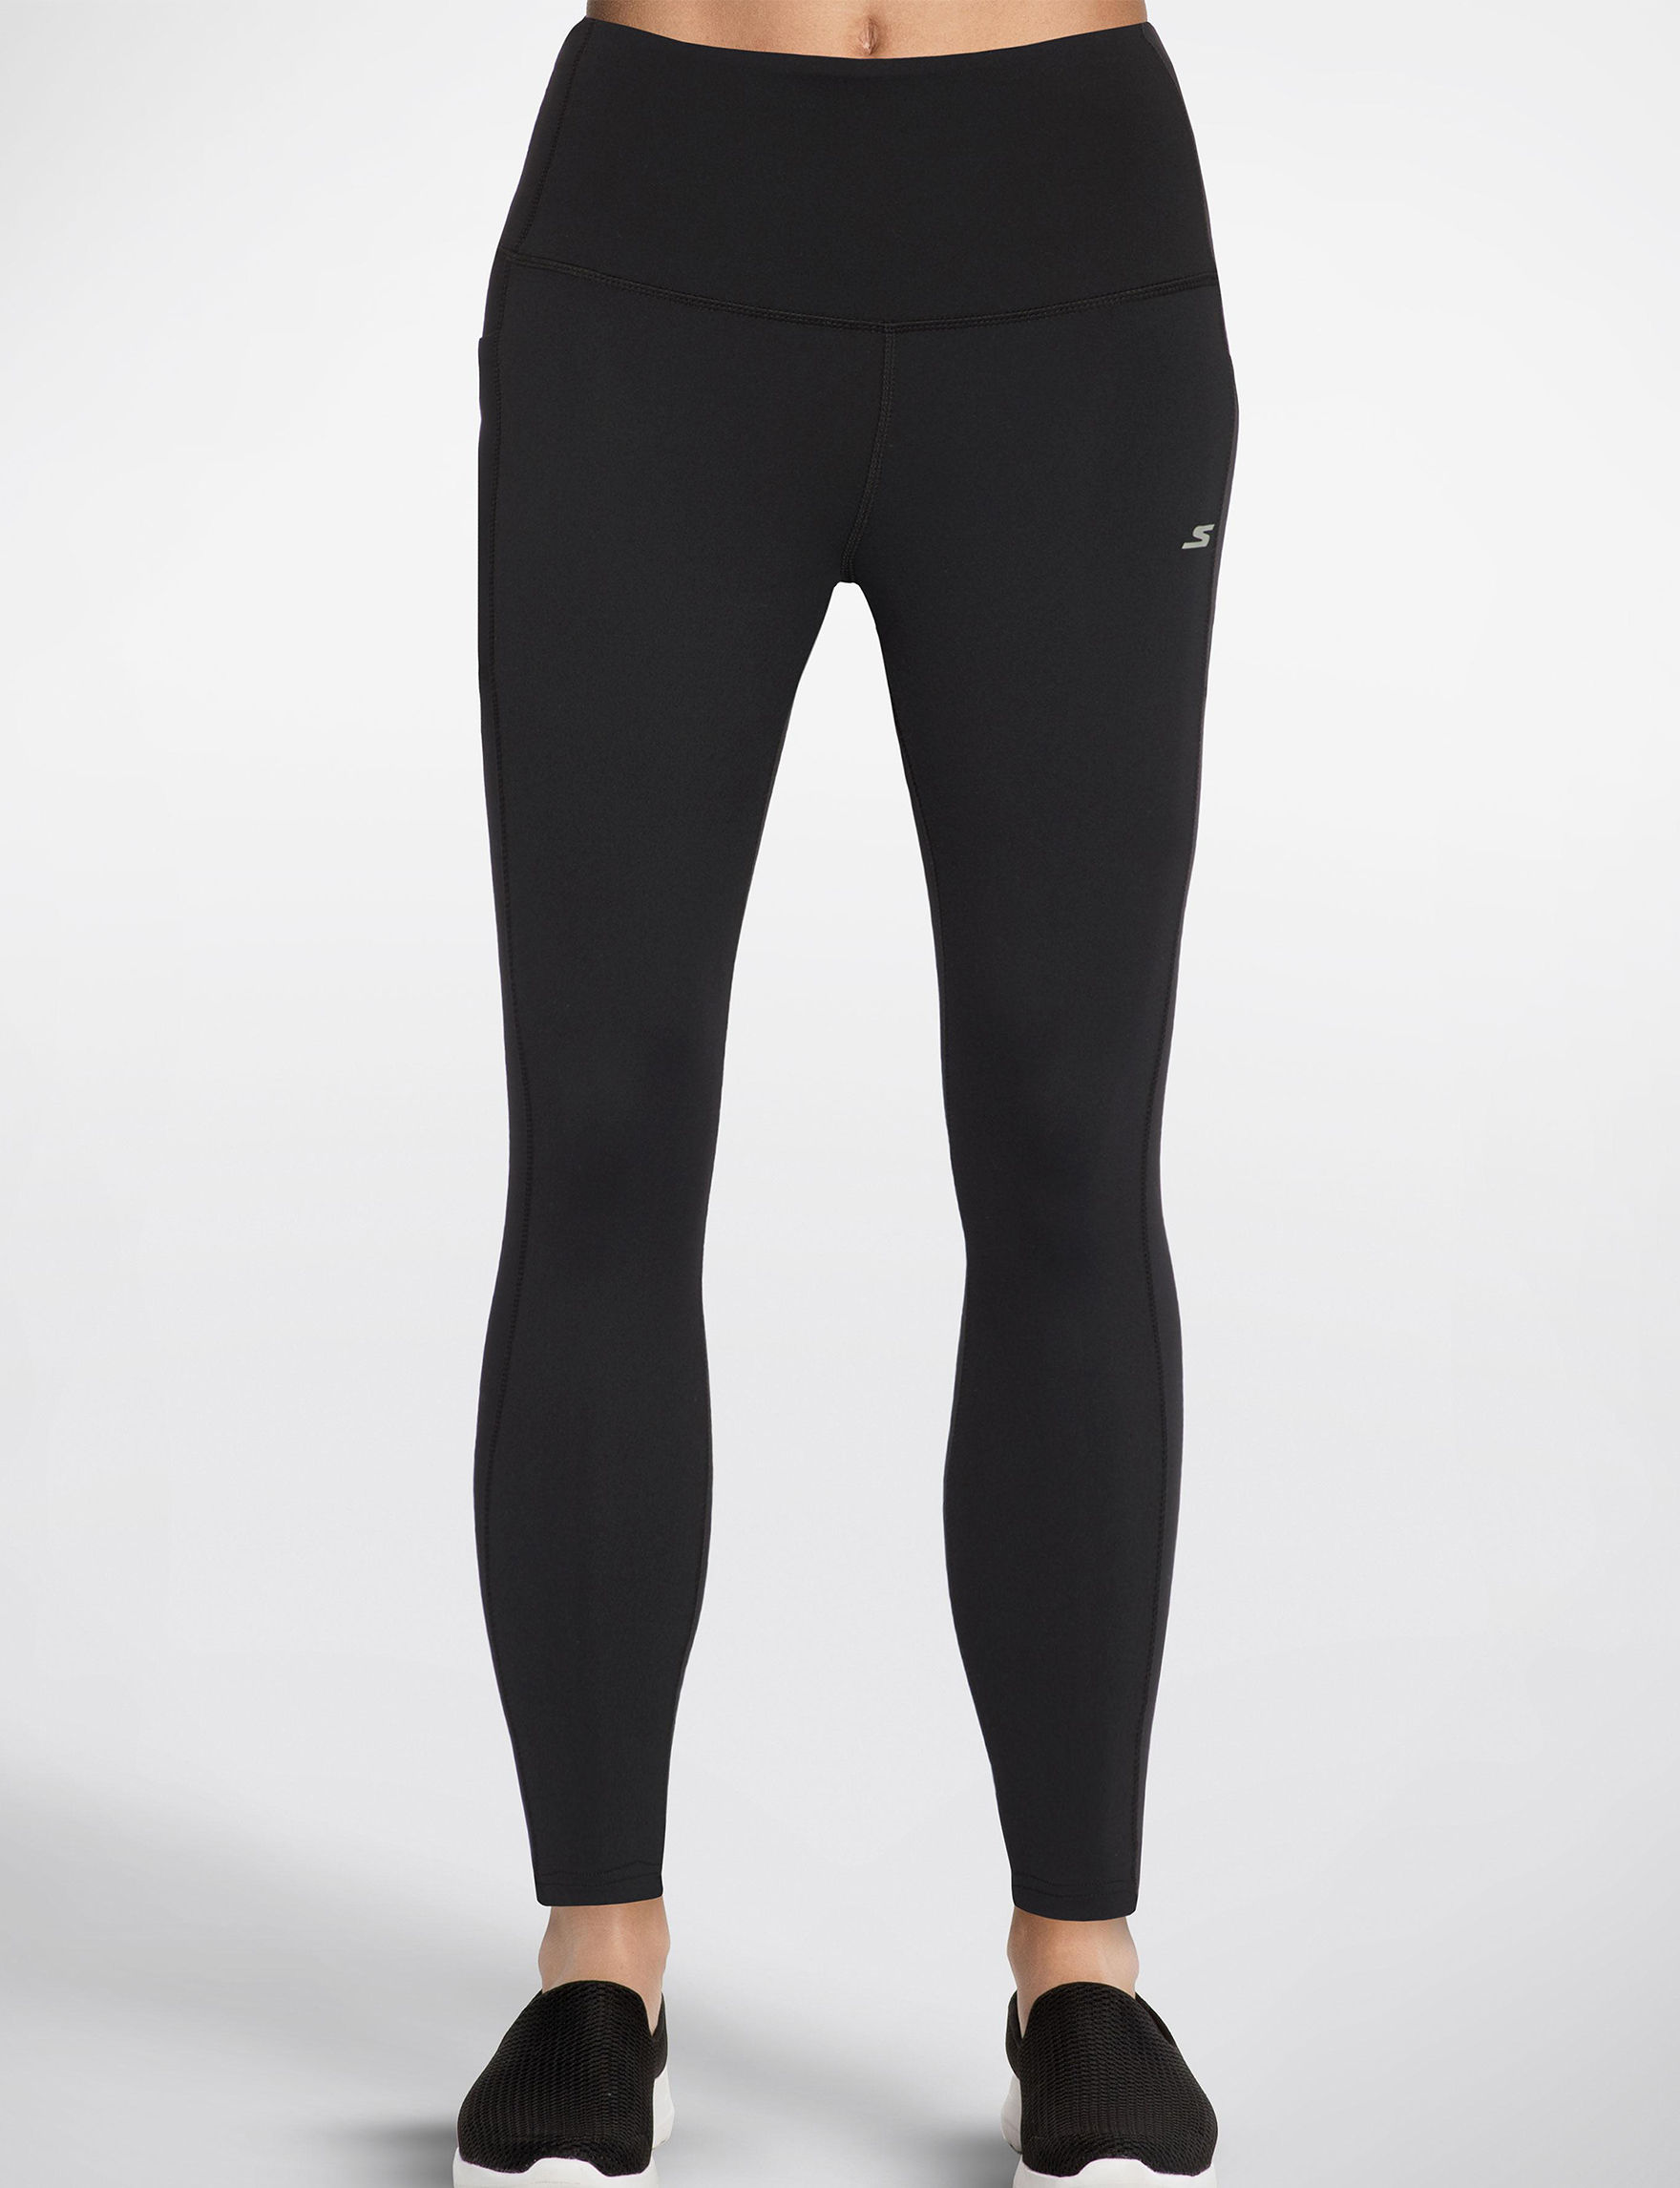 Skechers Black Leggings